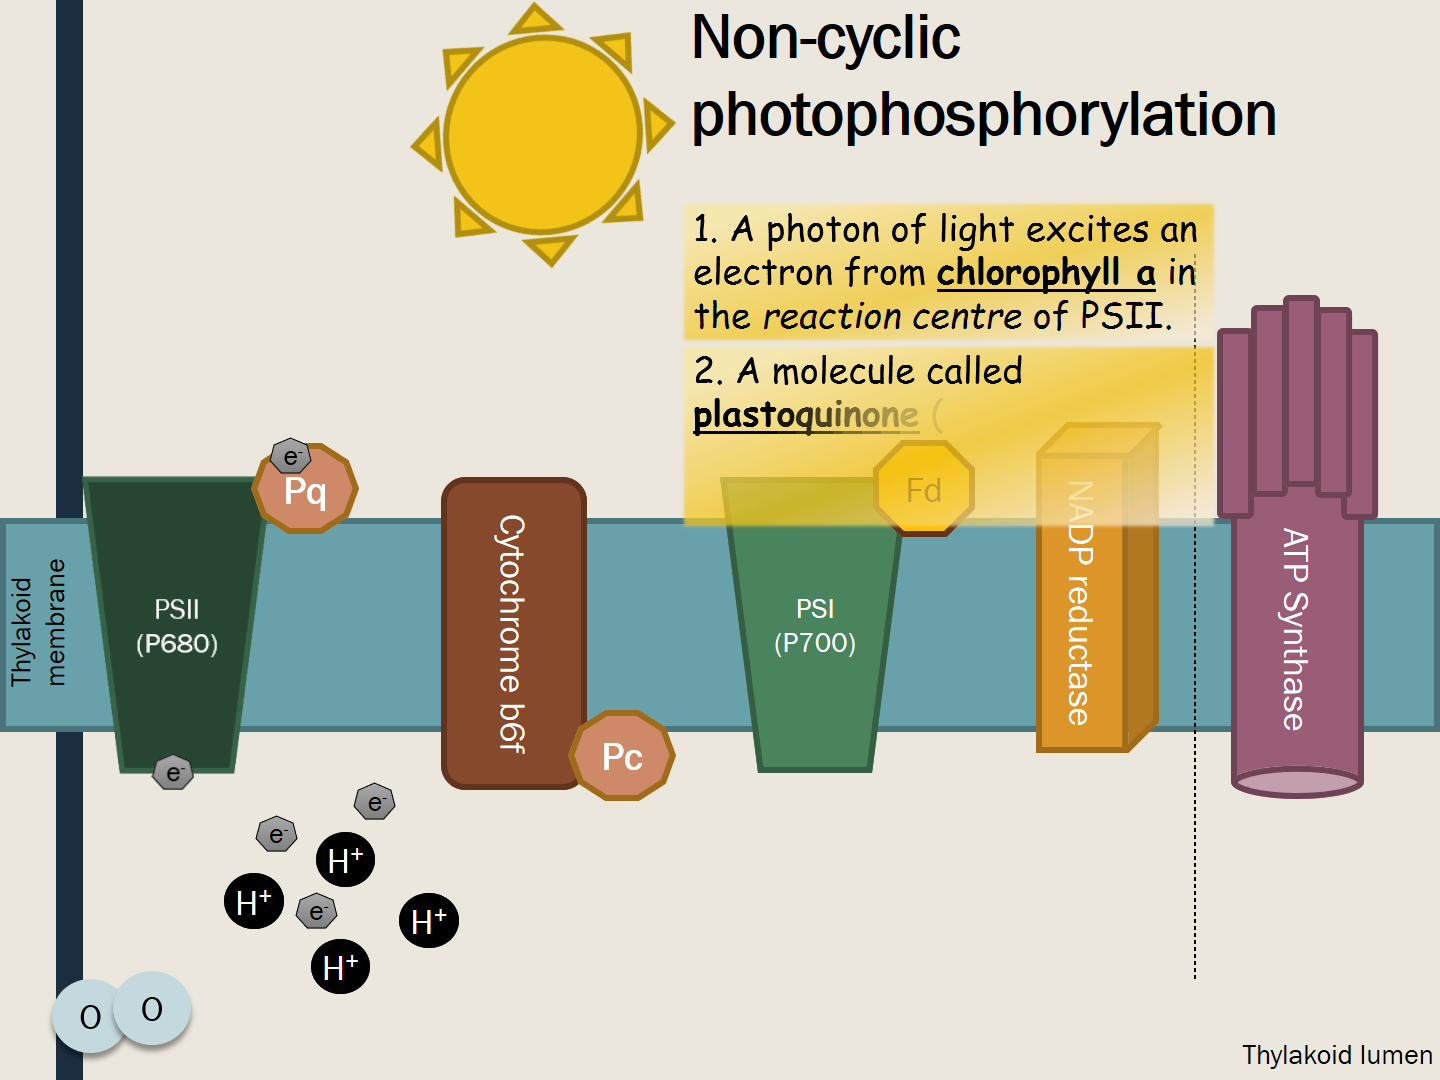 5.2.1 Photosynthesis